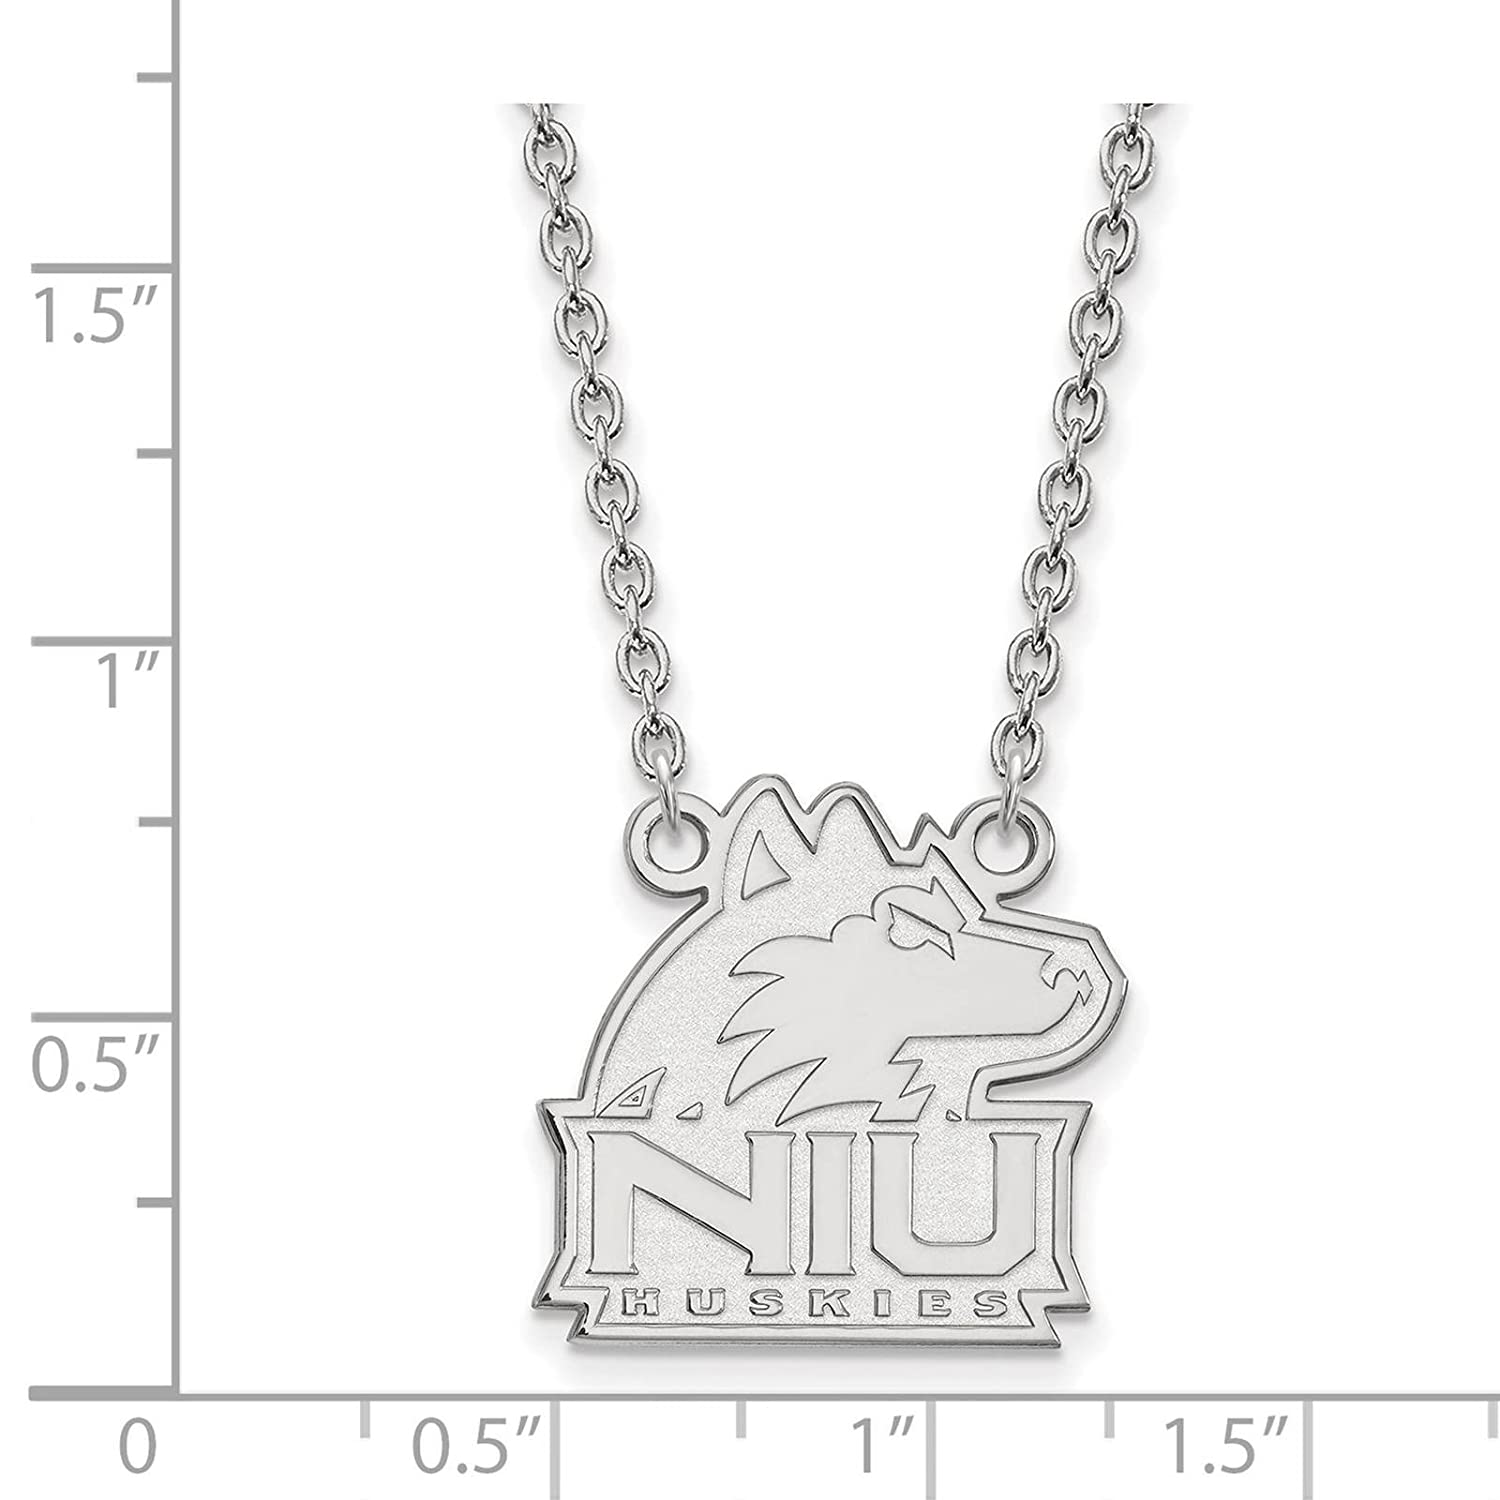 925 Sterling Silver Rhodium-plated Laser-cut Northern Illinois University Large Pendant w//Necklace 18